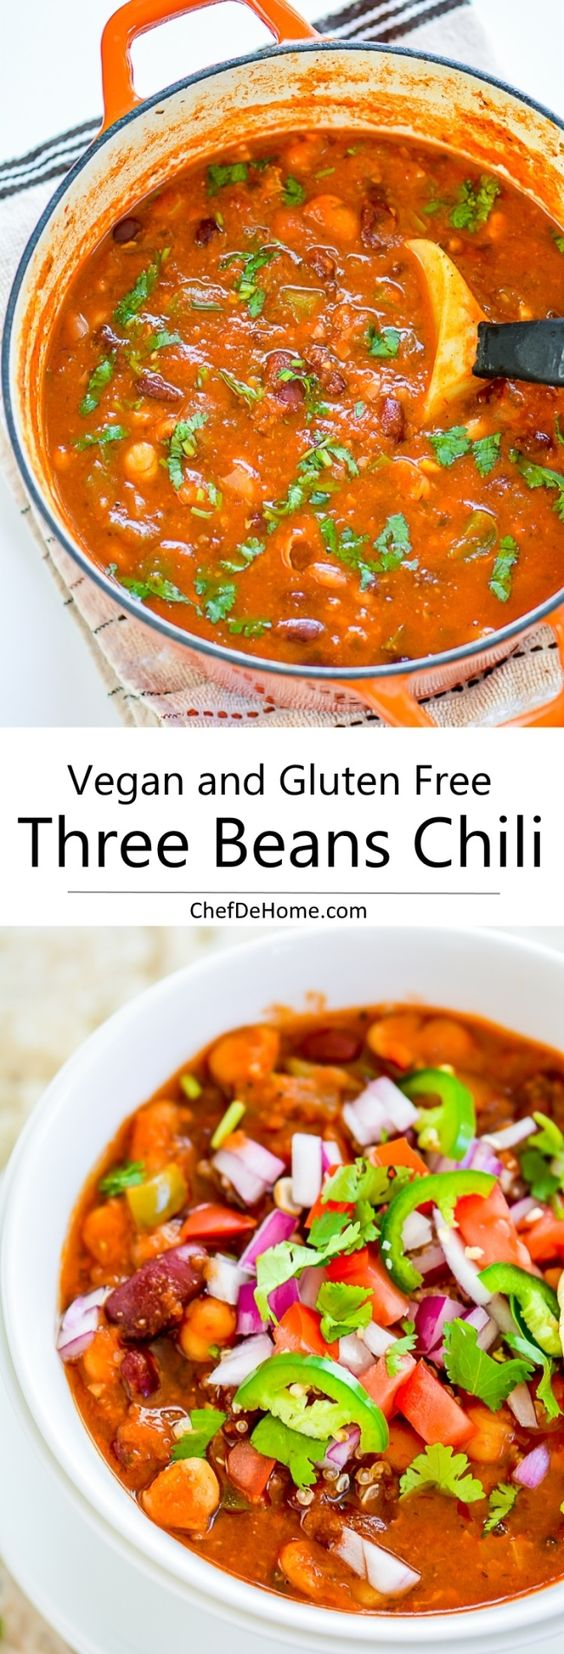 Easy Vegetarian Three Beans Chili with Chickpeas | Recipe | Bean Chili ...